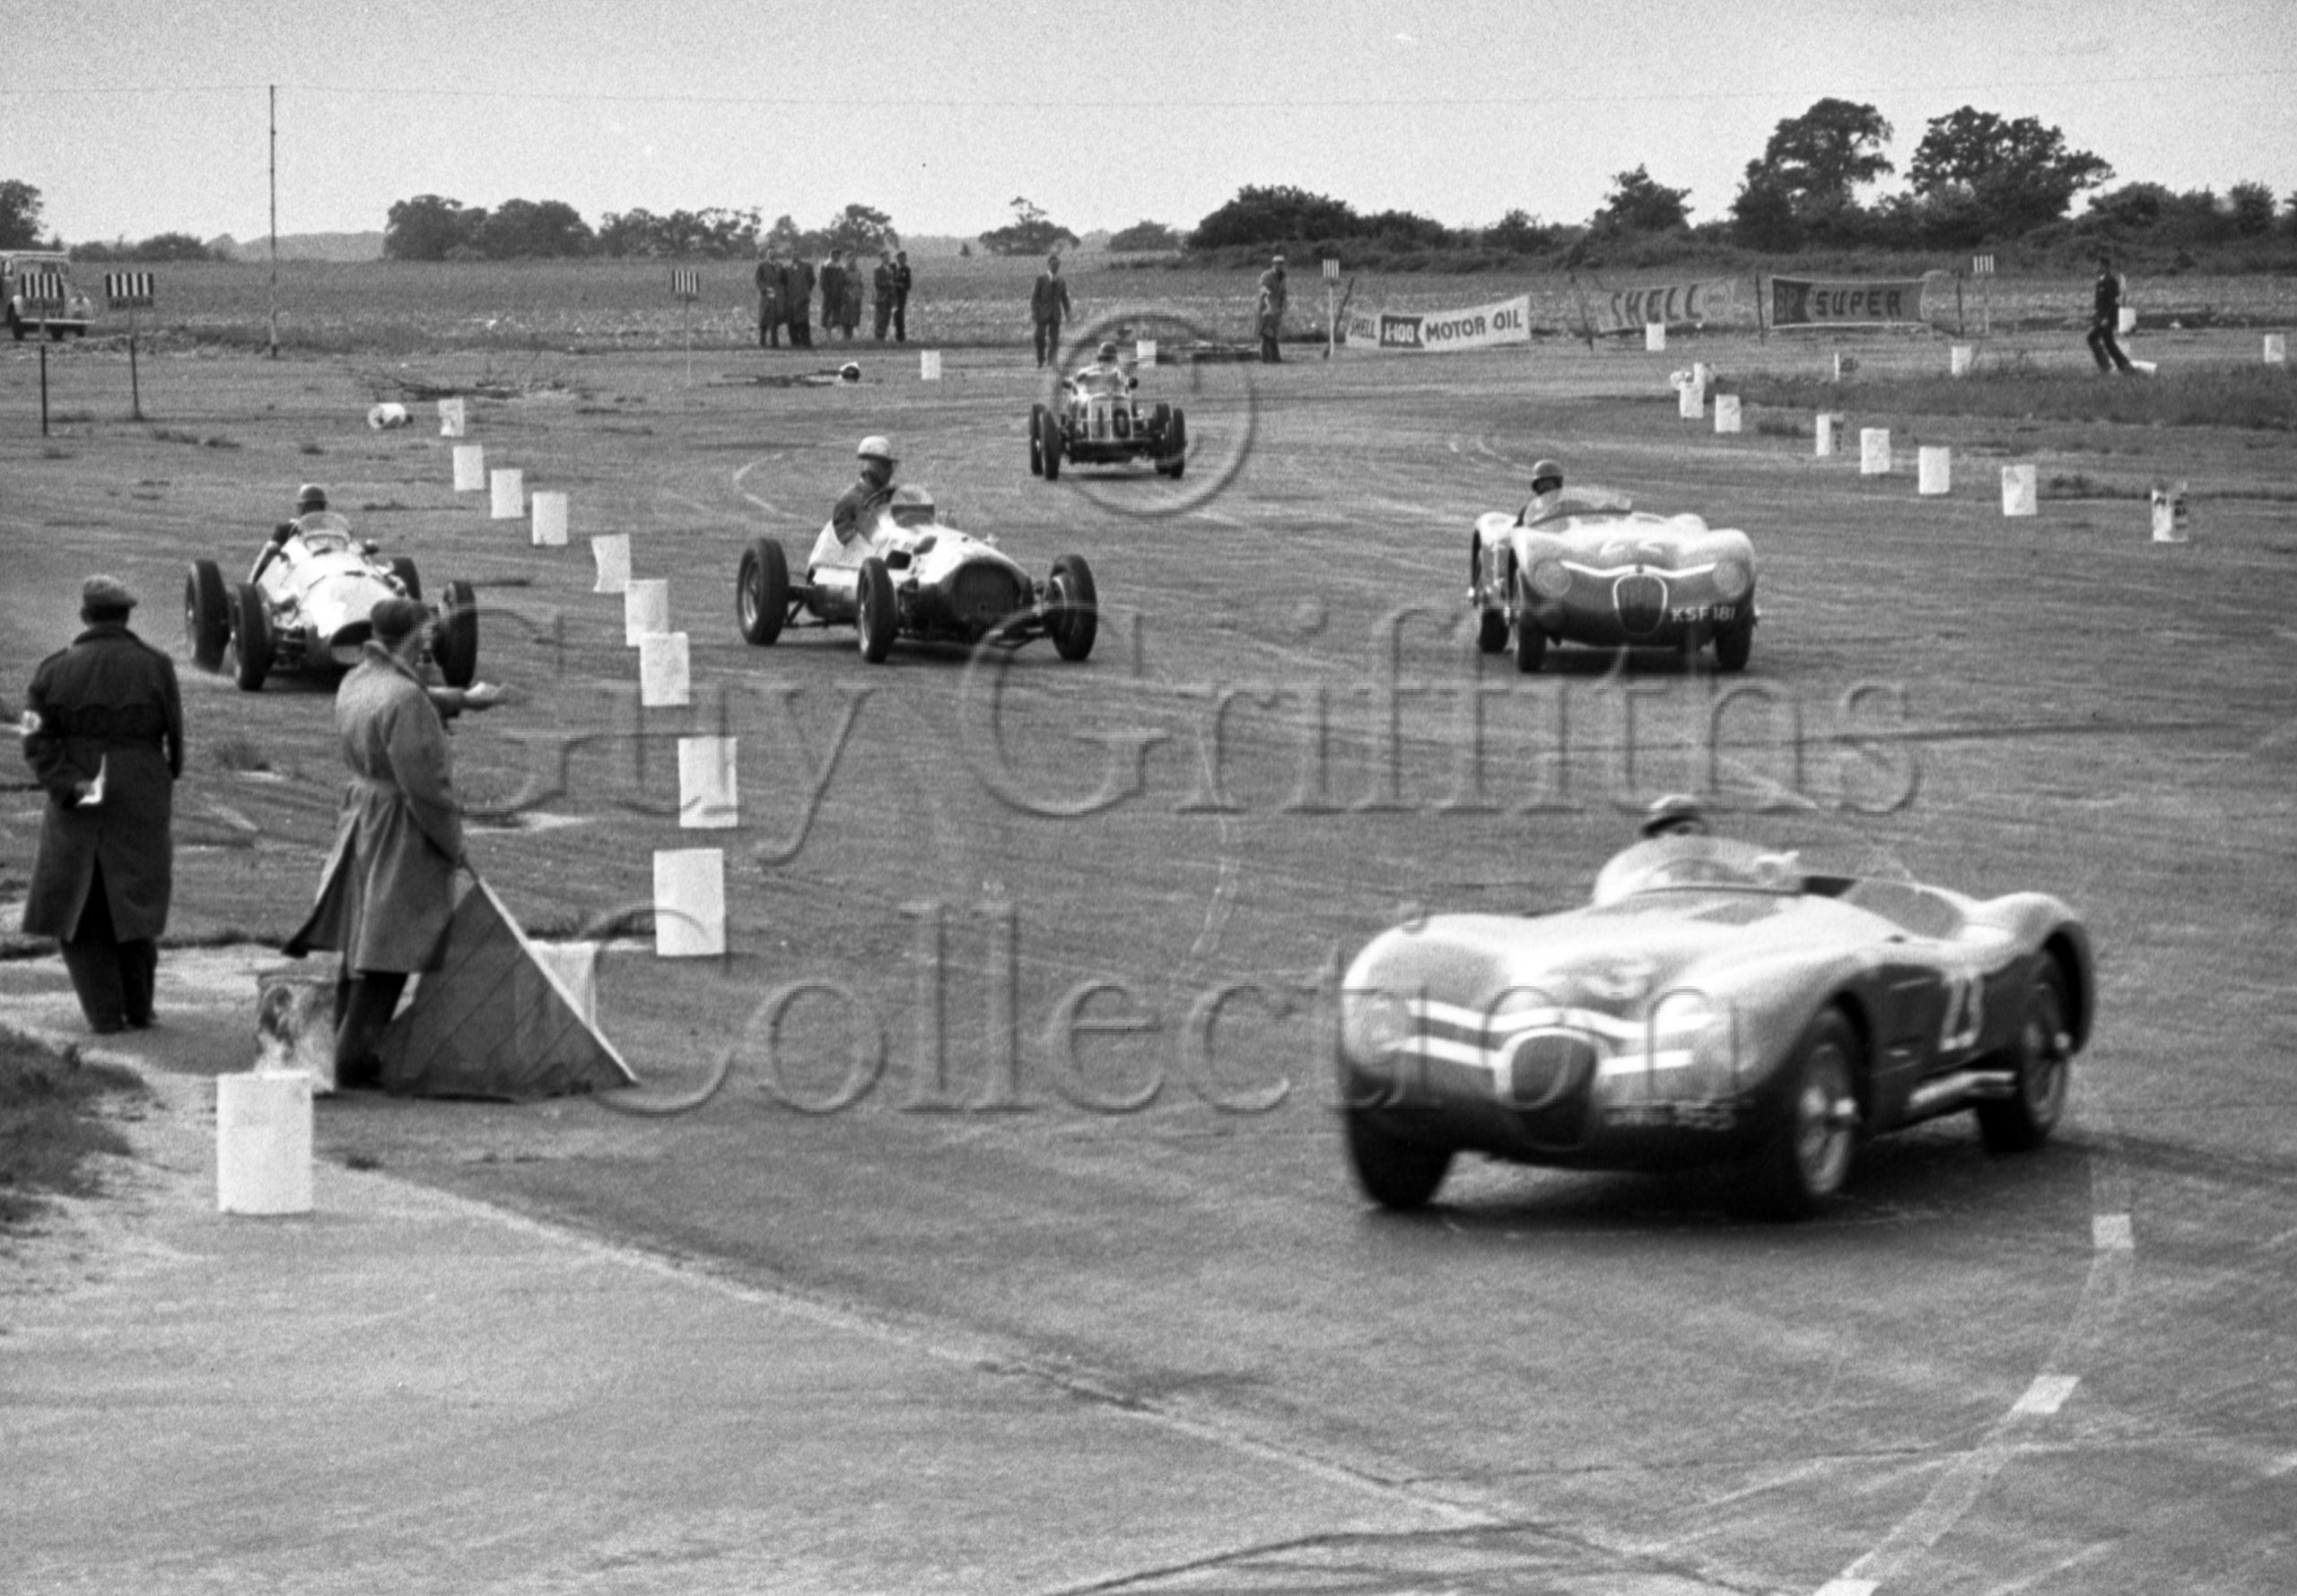 70-852–J-R-Stewart–Ecurie-Ecosse-Jaguar-C-Type-JWS-353–No-23–Snetterton–30-05-1953.jpg - Guy Griffiths Collection